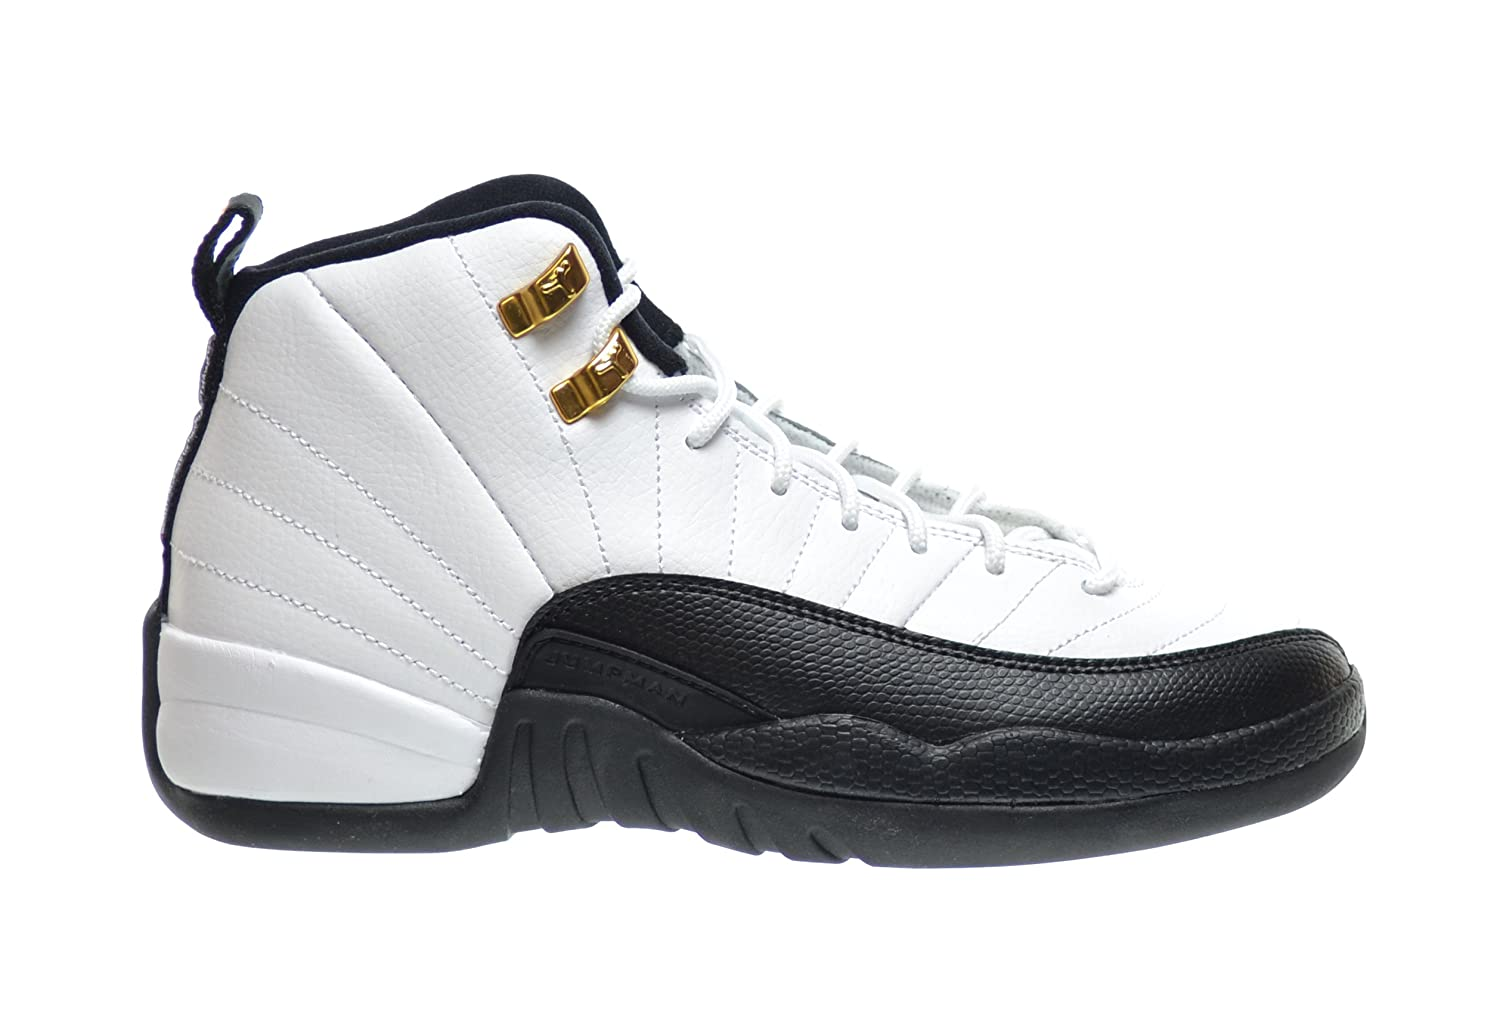 Air Jordan 12 Retro \\u0026quot;Taxi\\u0026quot; Big Kids Basketball Shoes White